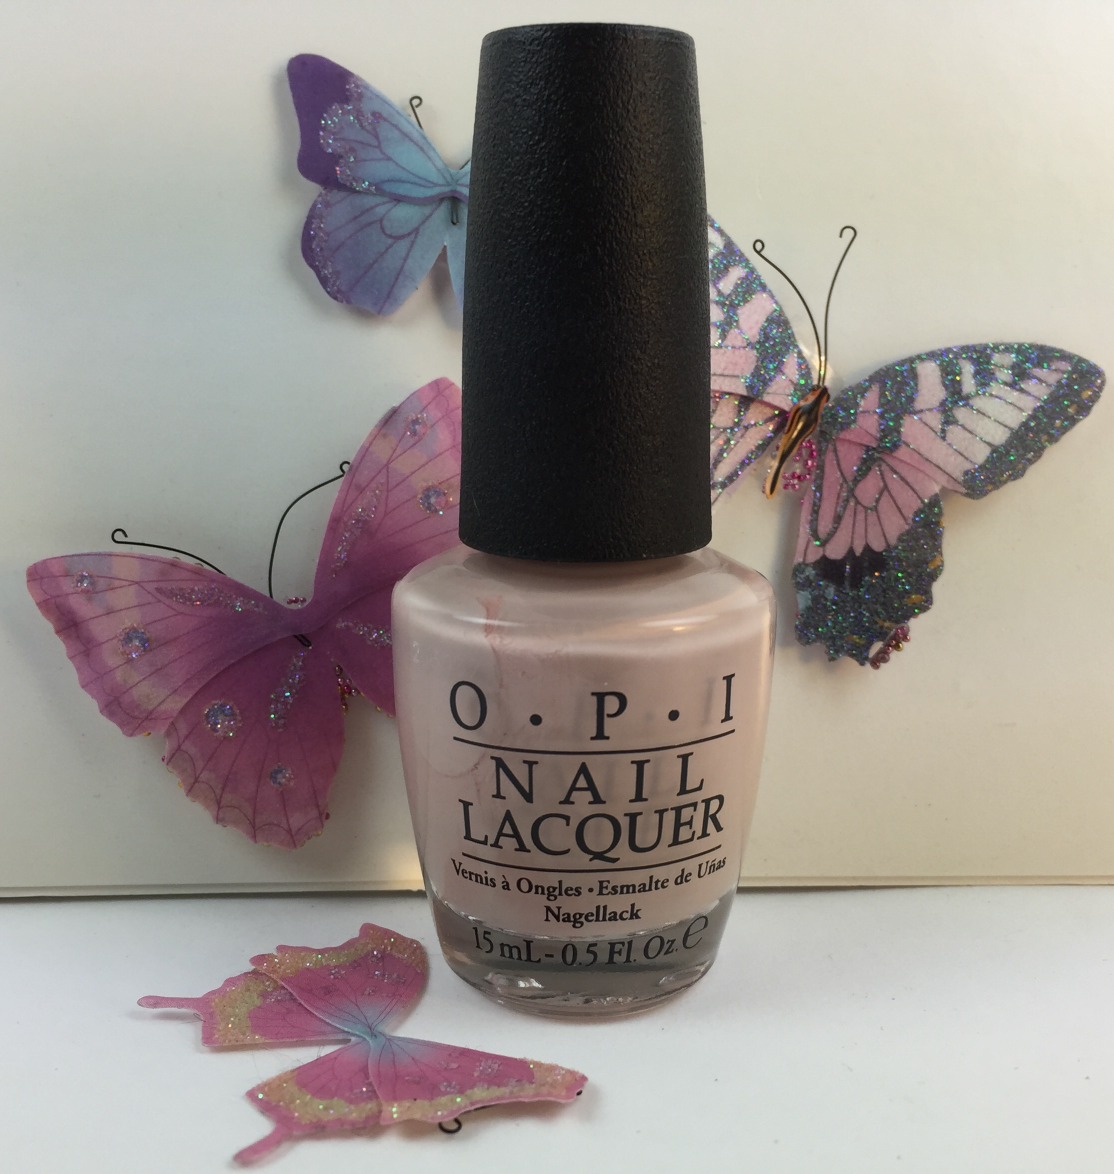 OPI Nail Lacquer - Venice Collection - Tiramisu For Two